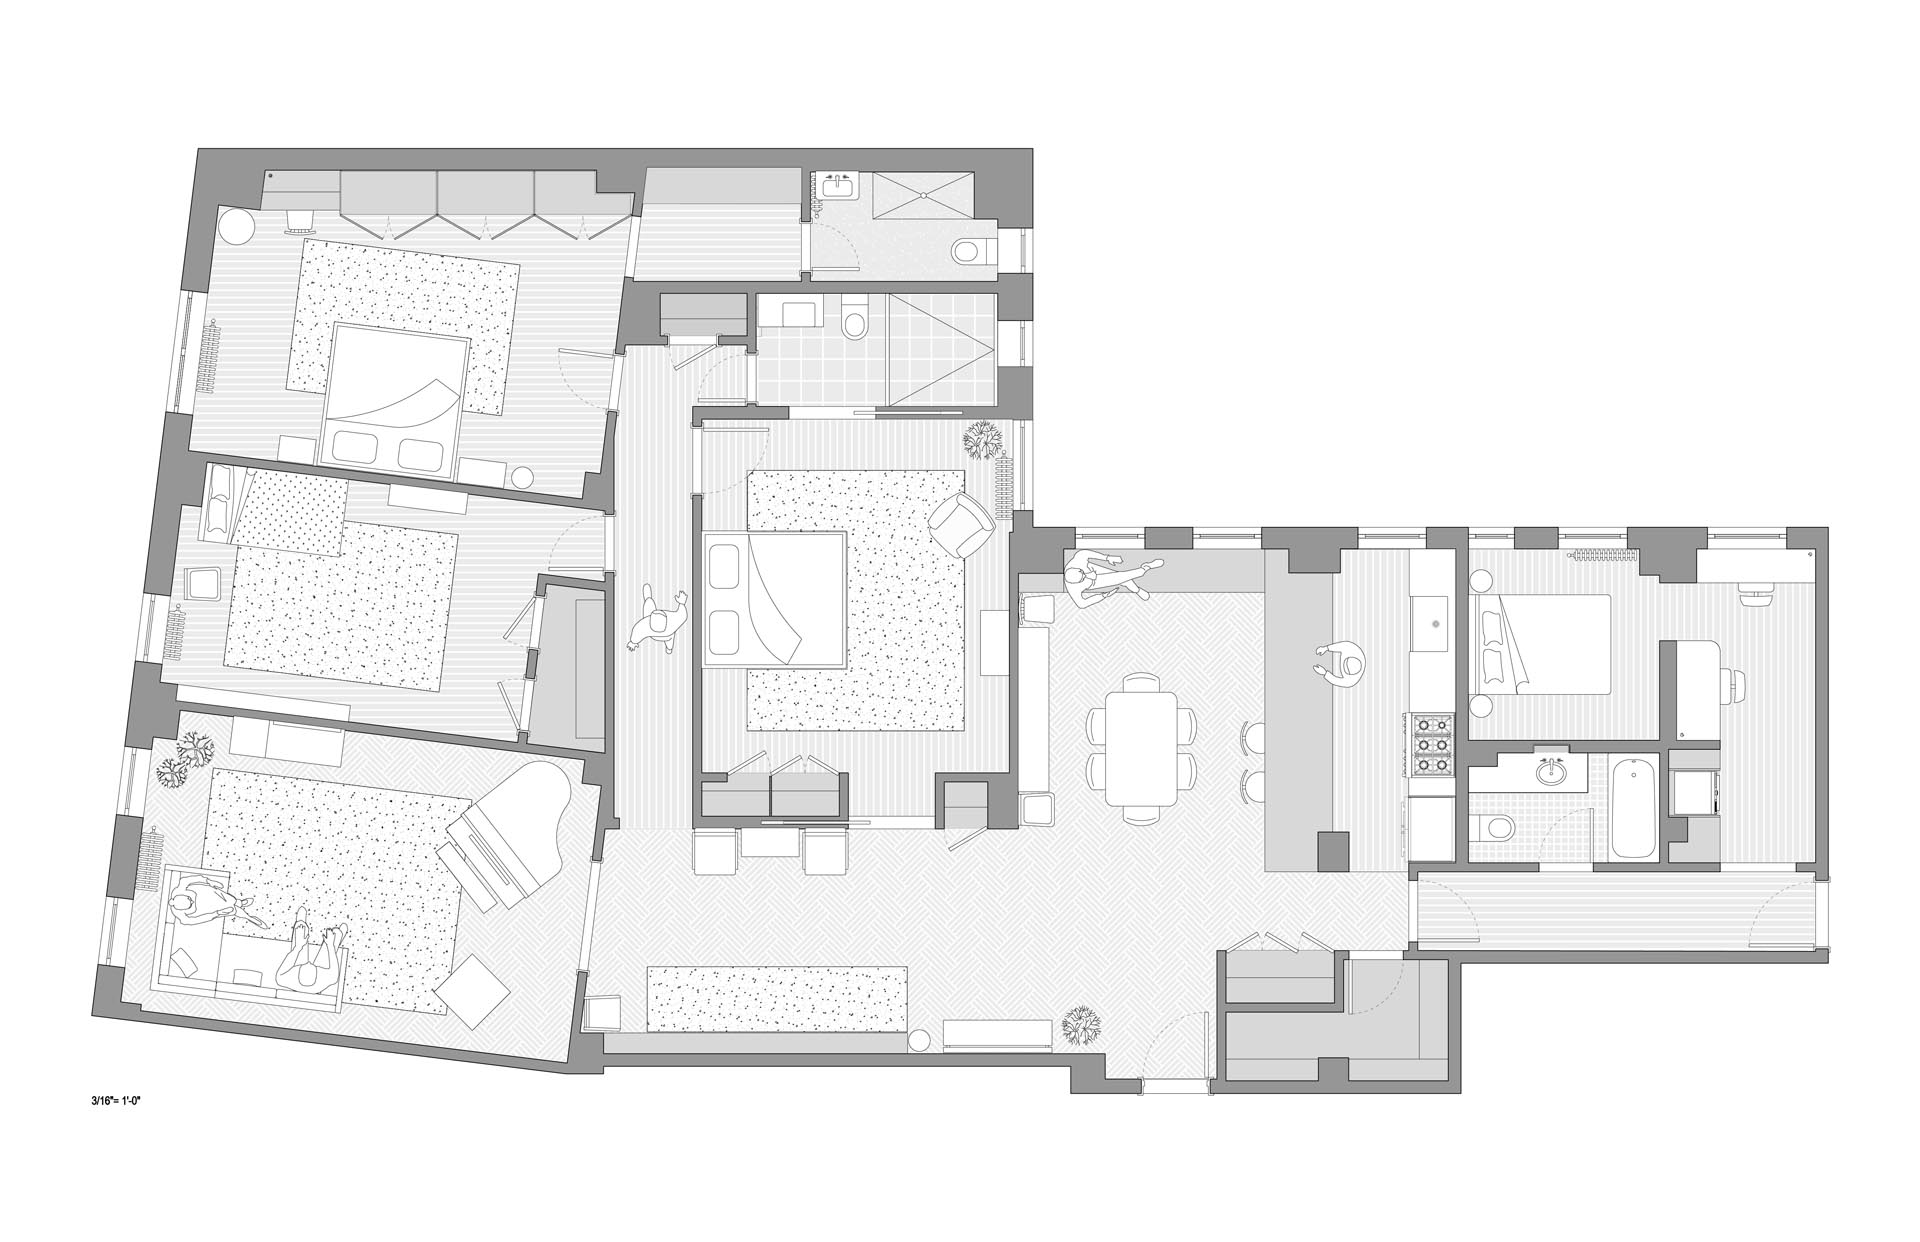 The floor plan of a four bedroom apartment.